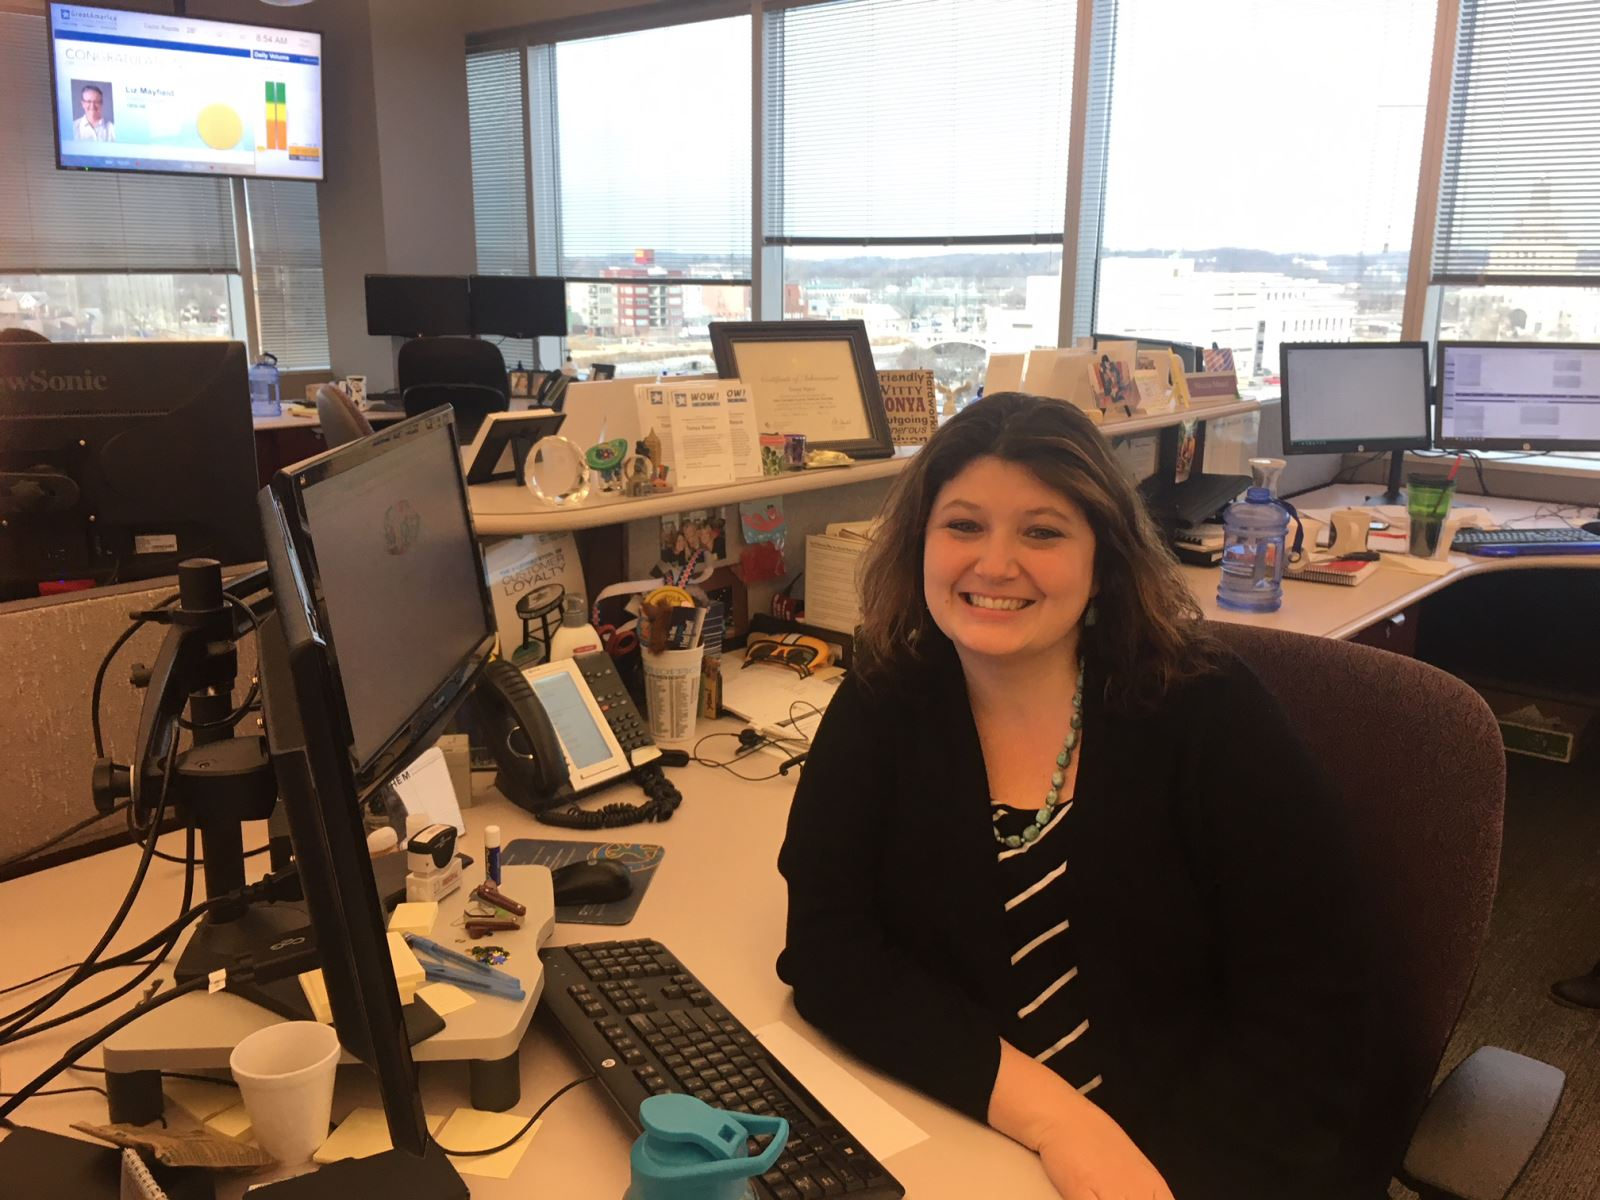 A Day in the Life of... Tonya, Sales Support Specialist